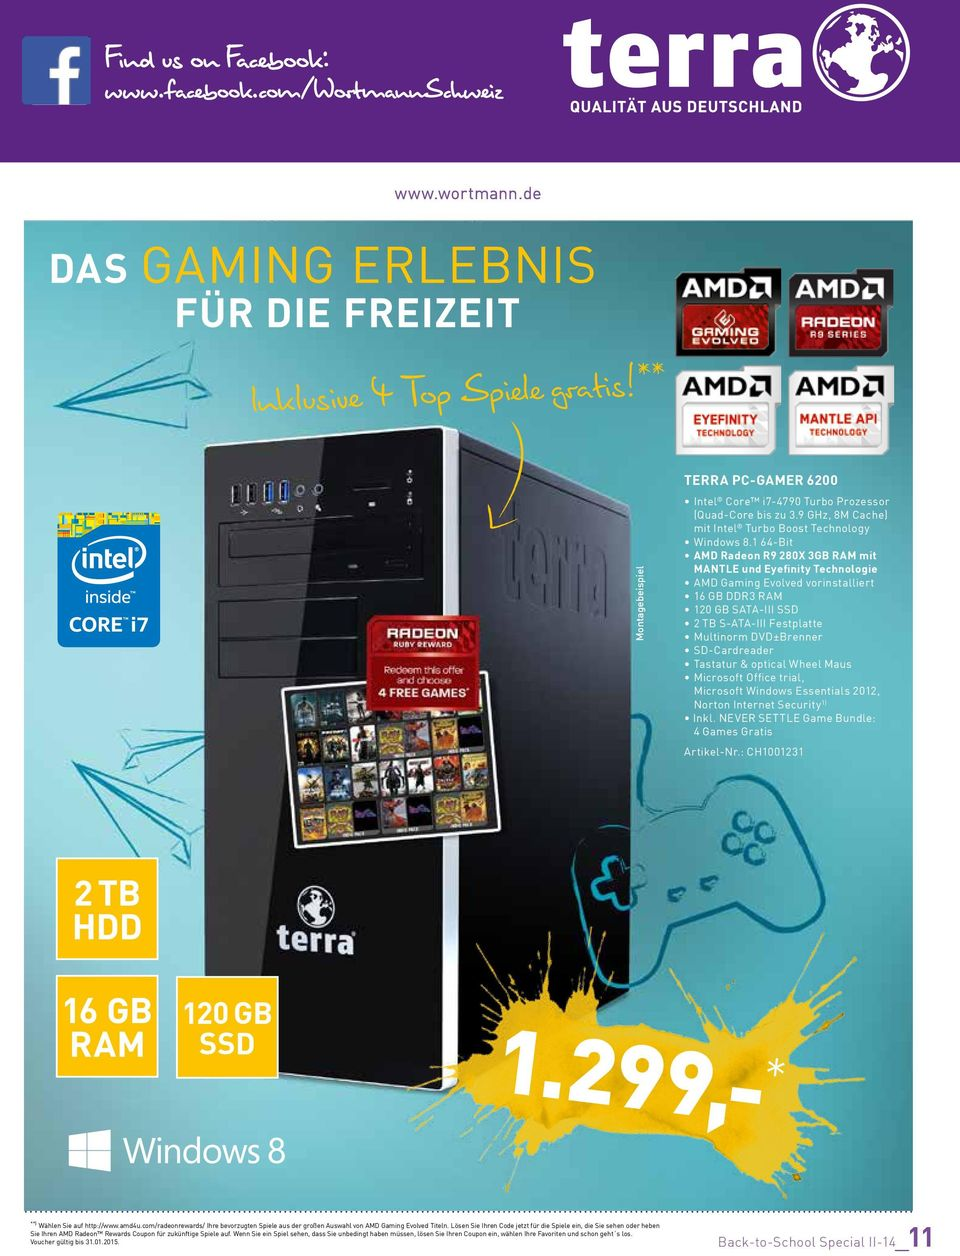 9 GHz, 8M Cache) mit Intel Turbo Boost Technology AMD Radeon R9 280X 3 mit MANTLE und Eyefinity Technologie AMD Gaming Evolved vorinstalliert 16 DDR3 120 SATA-III SSD 2 TB S-ATA-III Festplatte